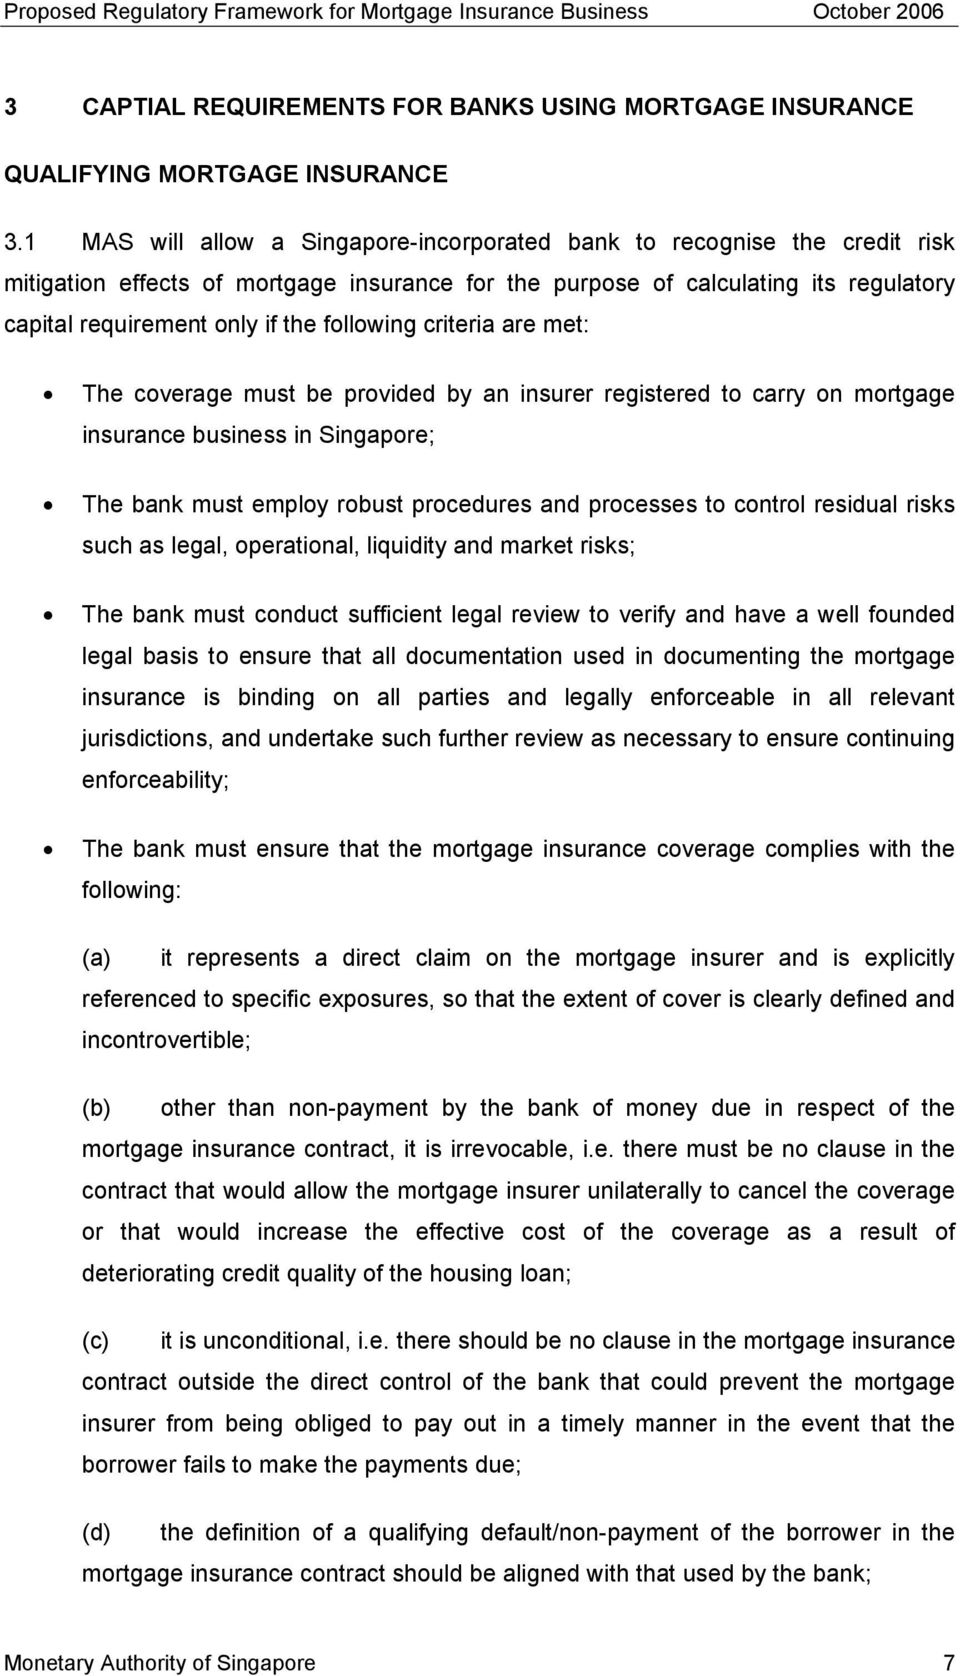 following criteria are met: The coverage must be provided by an insurer registered to carry on mortgage insurance business in Singapore; The bank must employ robust procedures and processes to